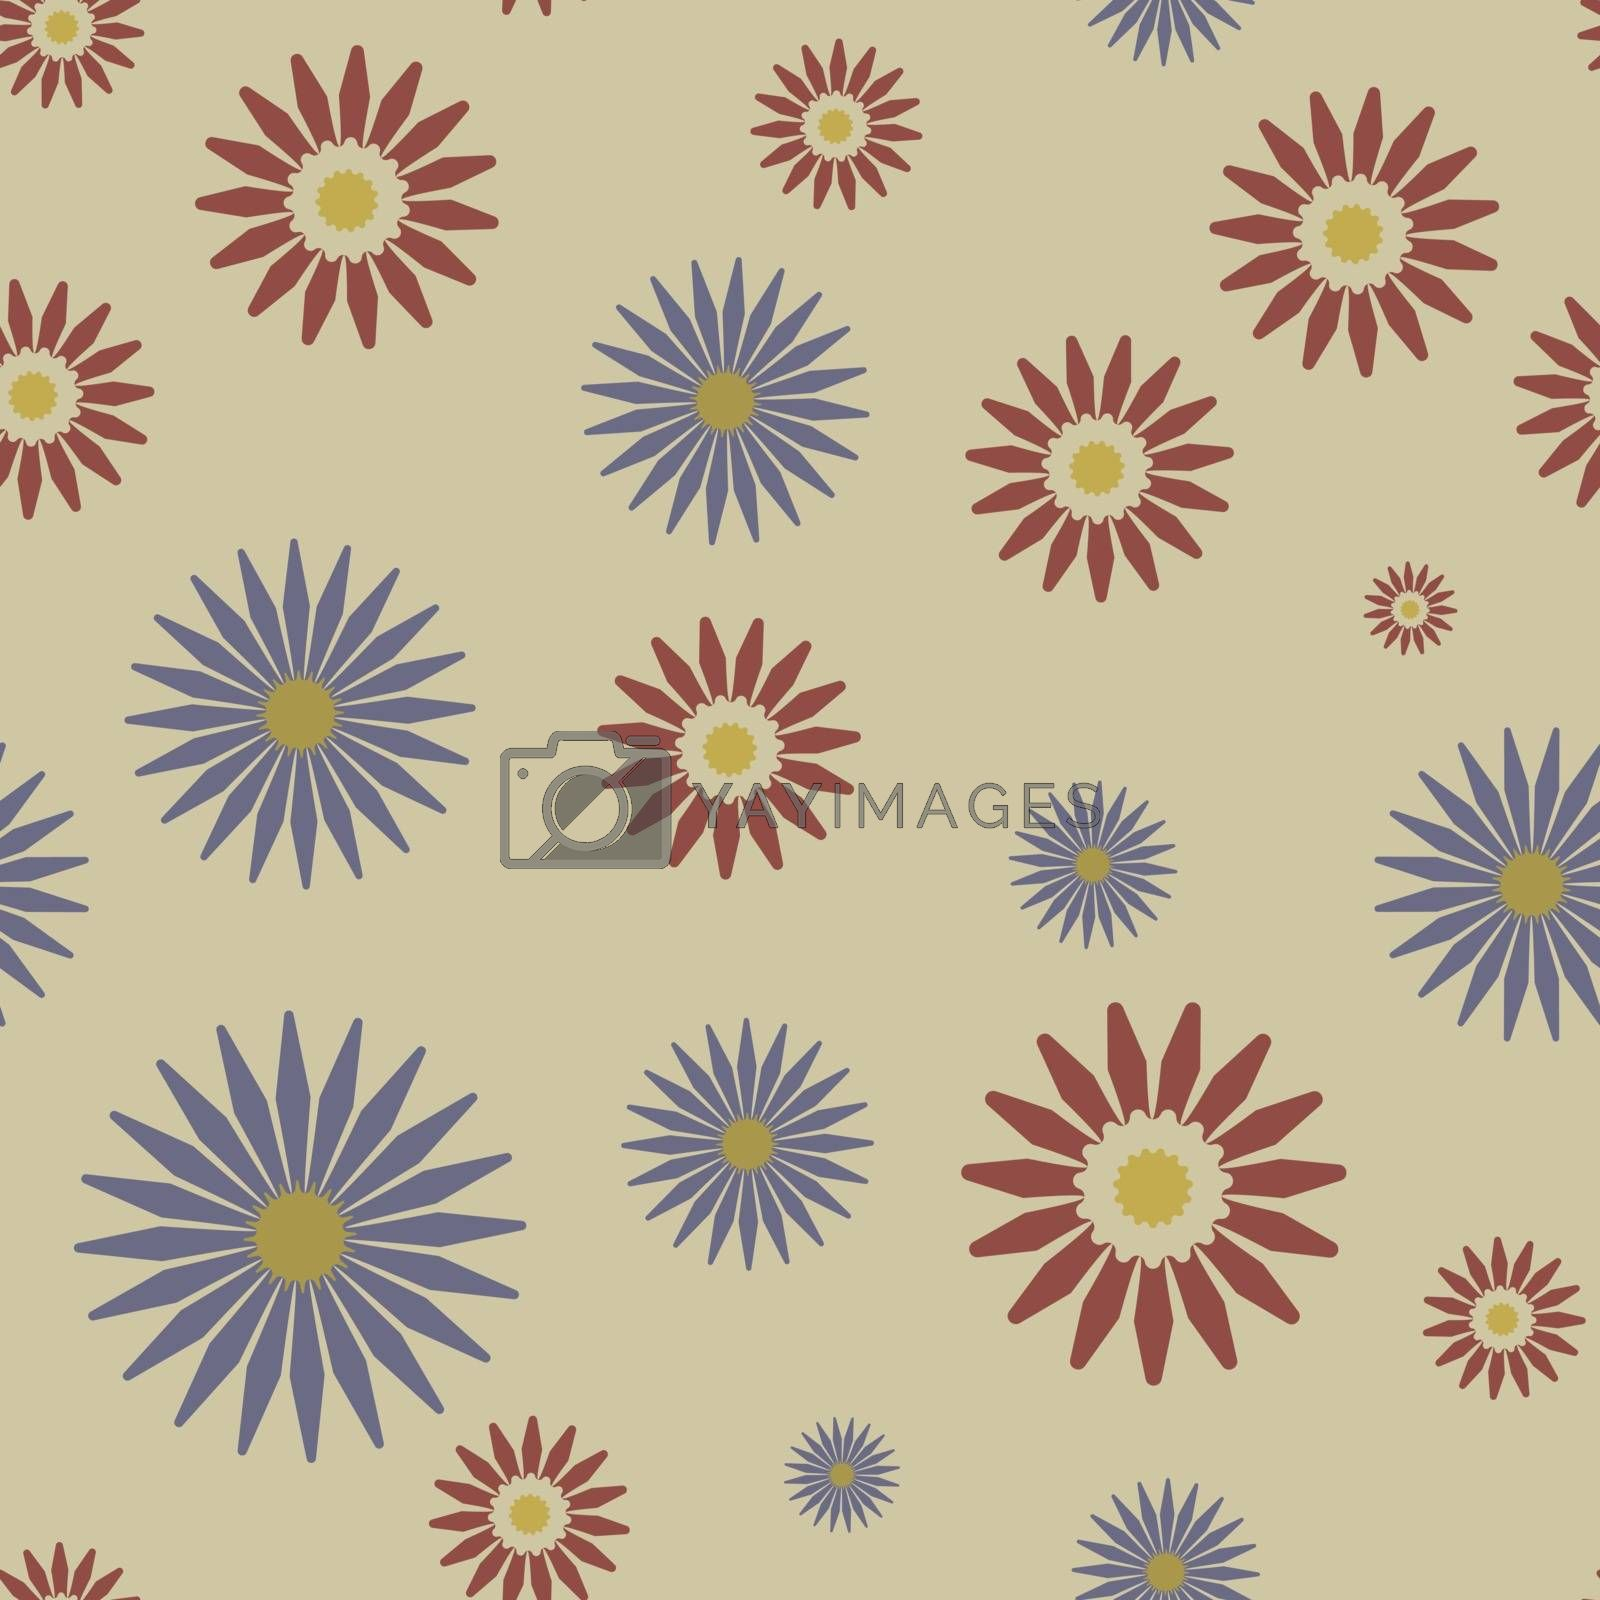 Cute abstract colorful seamless pattern with simple red and blue flowers on beige background